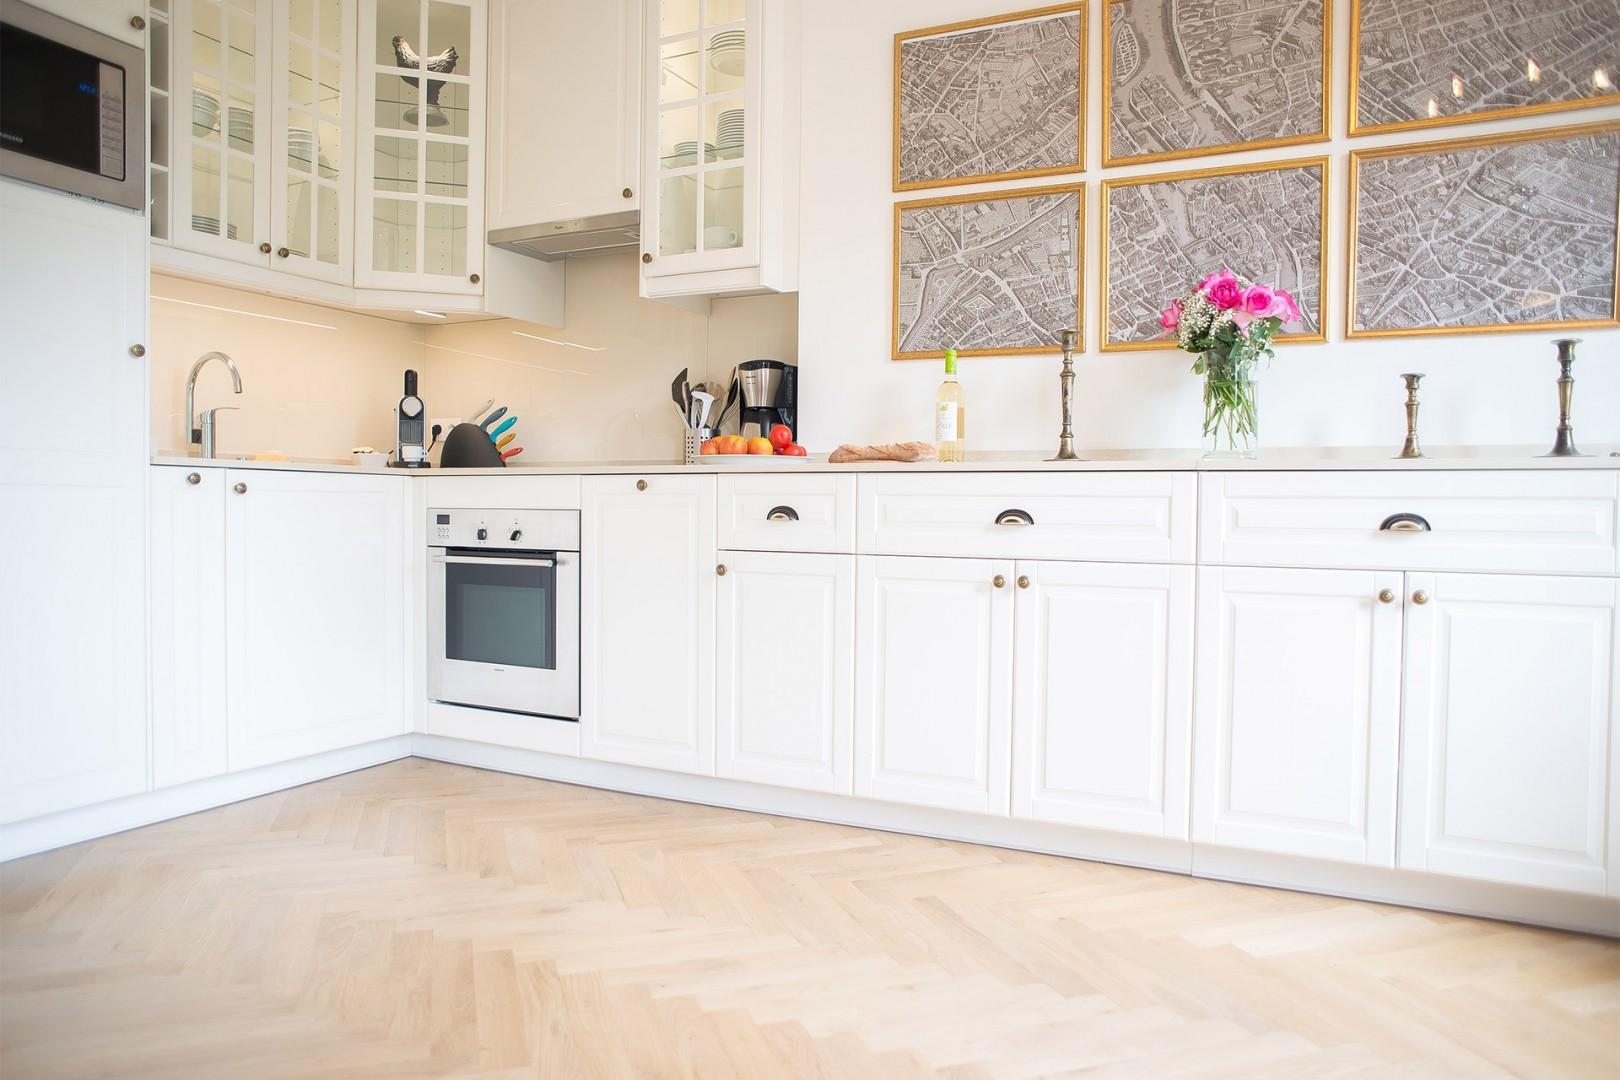 Enjoy the beautiful kitchen with everything you need to cook at home.